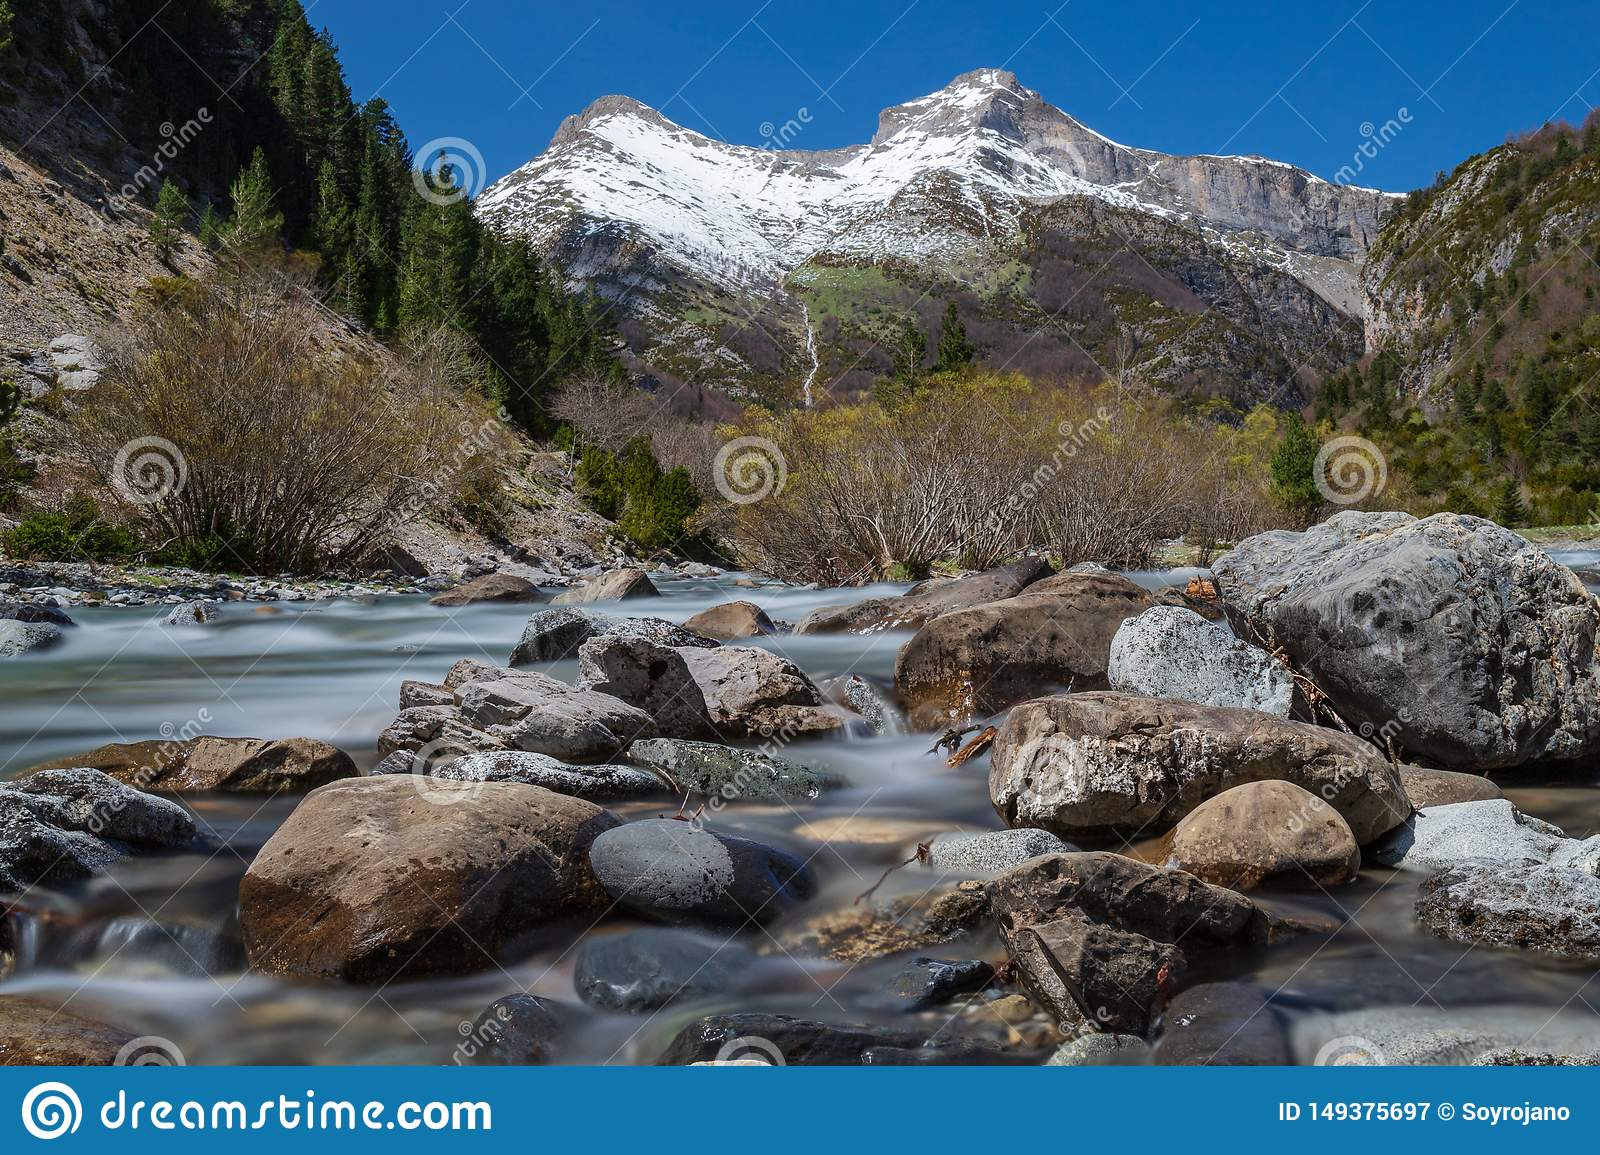 The Snowy Mountains & the river rocks